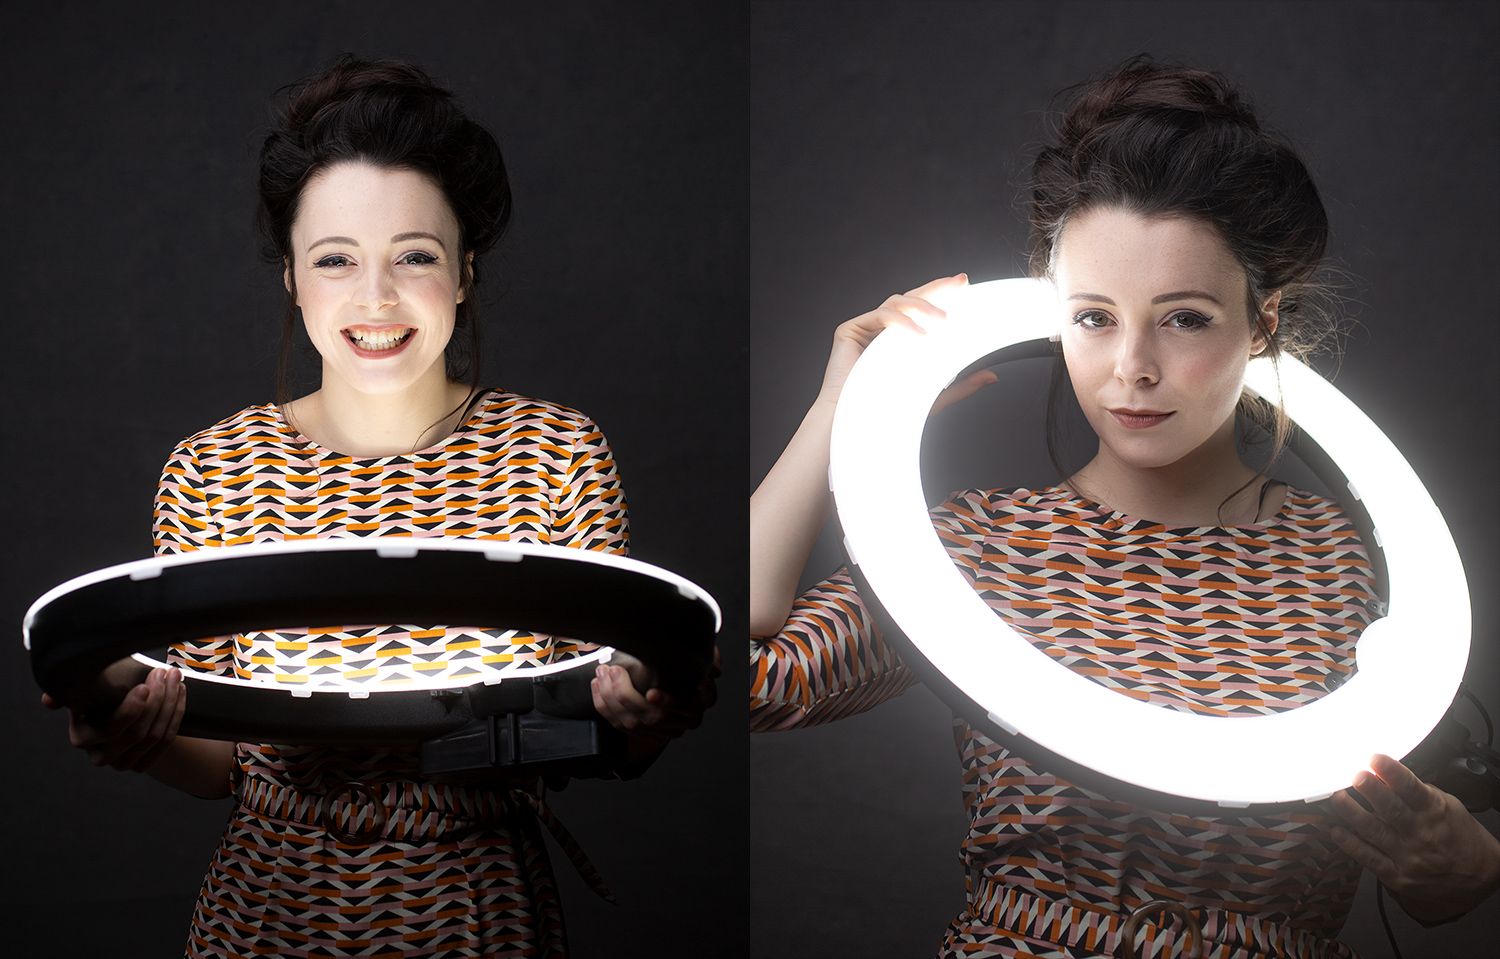 Image: Having your subject pose with the light itself can create some interesting and fun portraits....